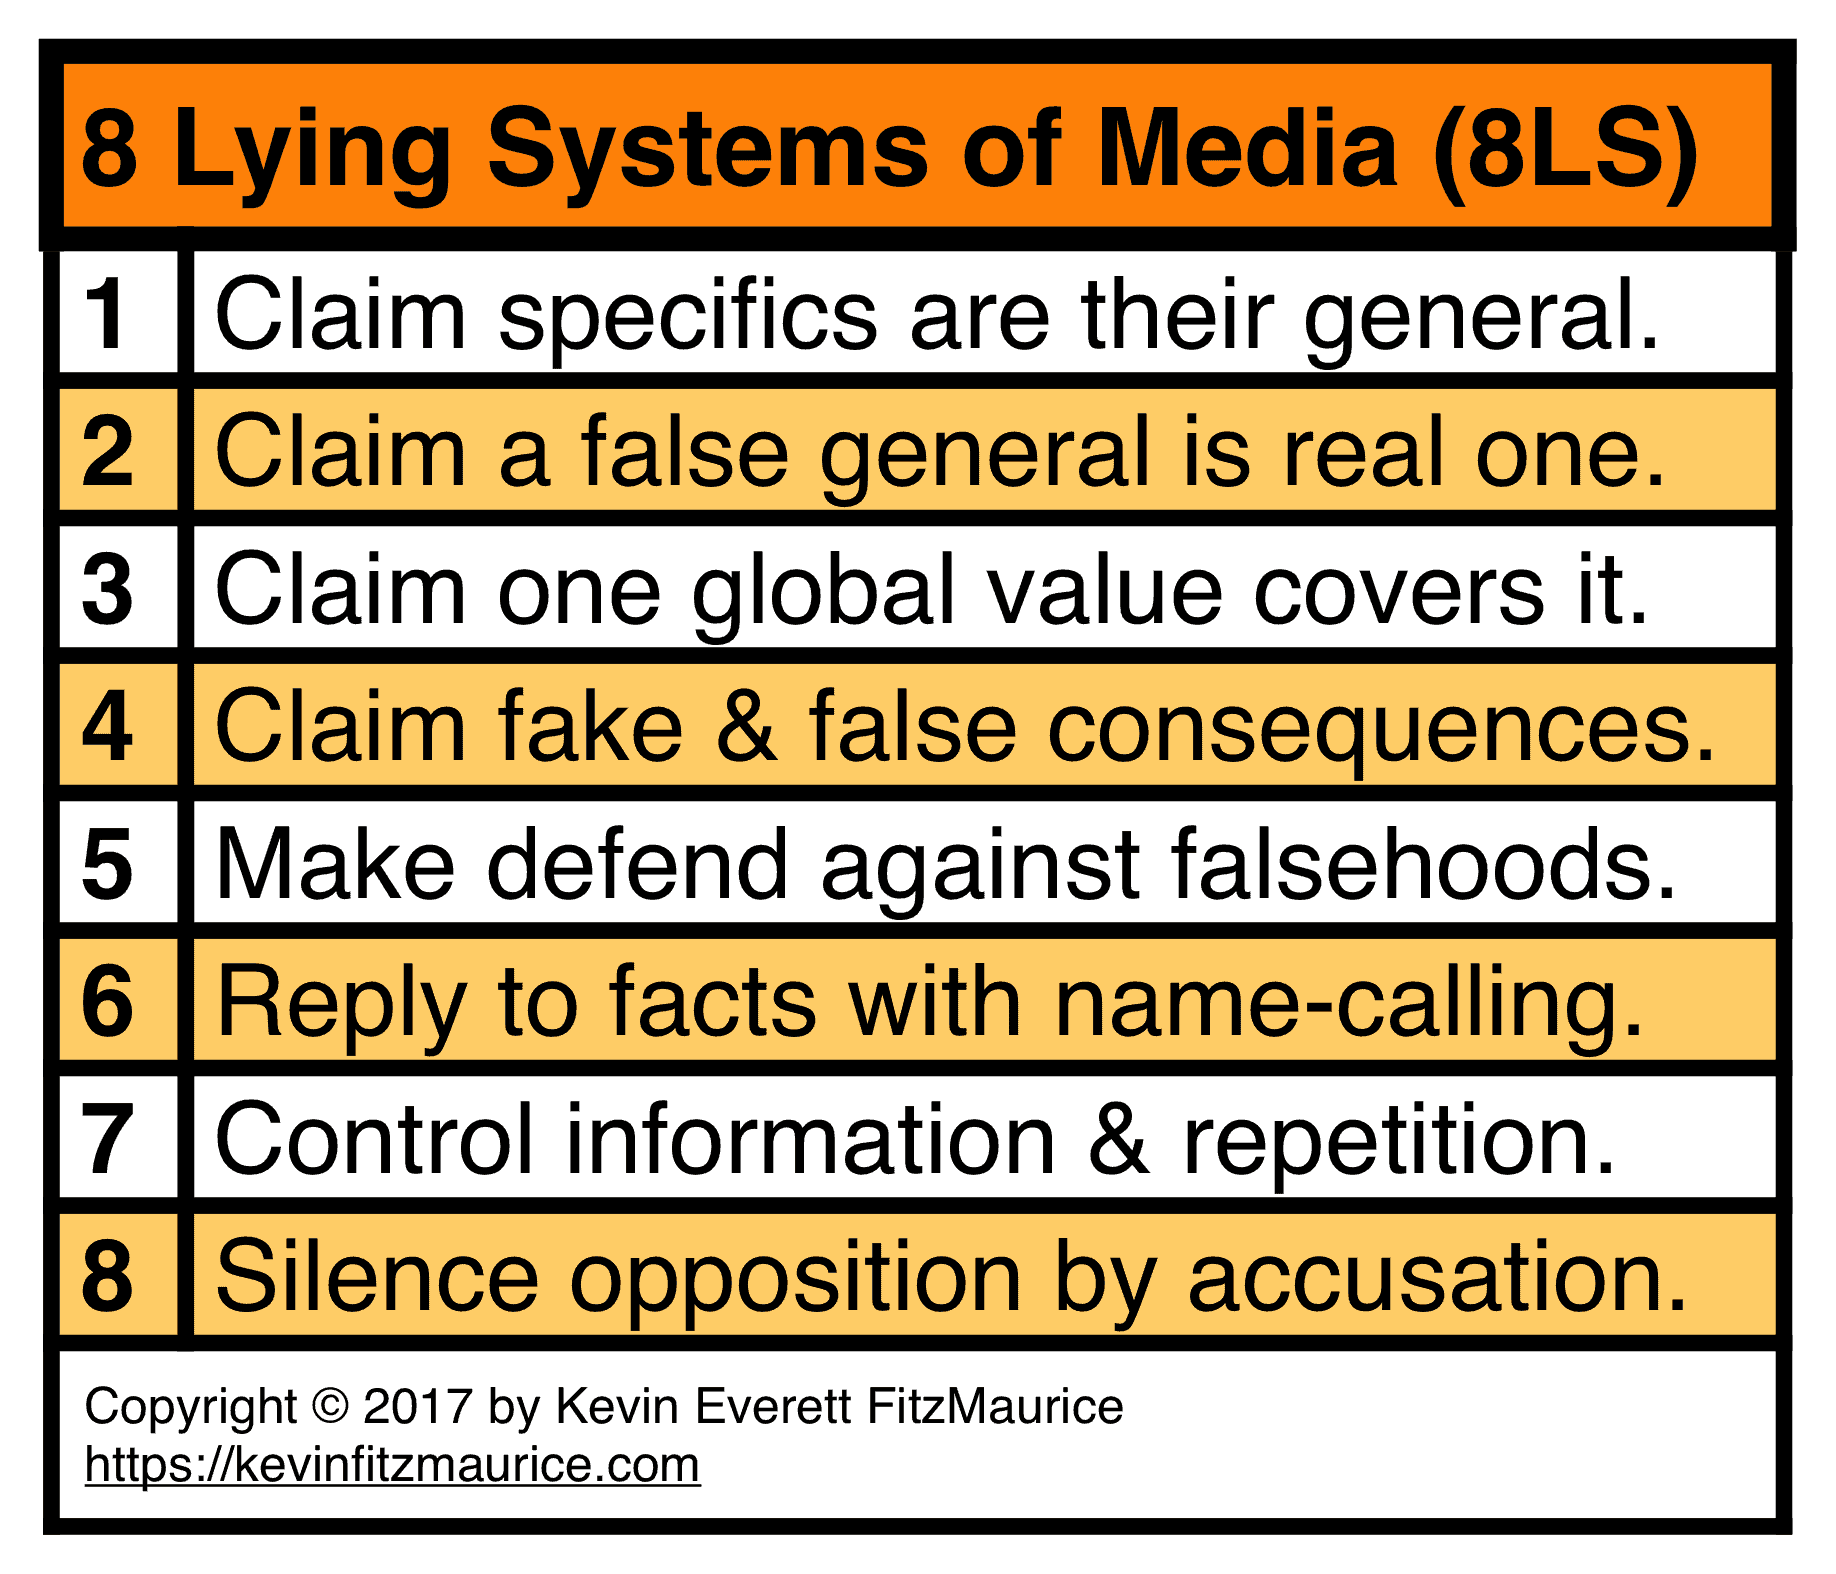 8 Lying Systems of Media